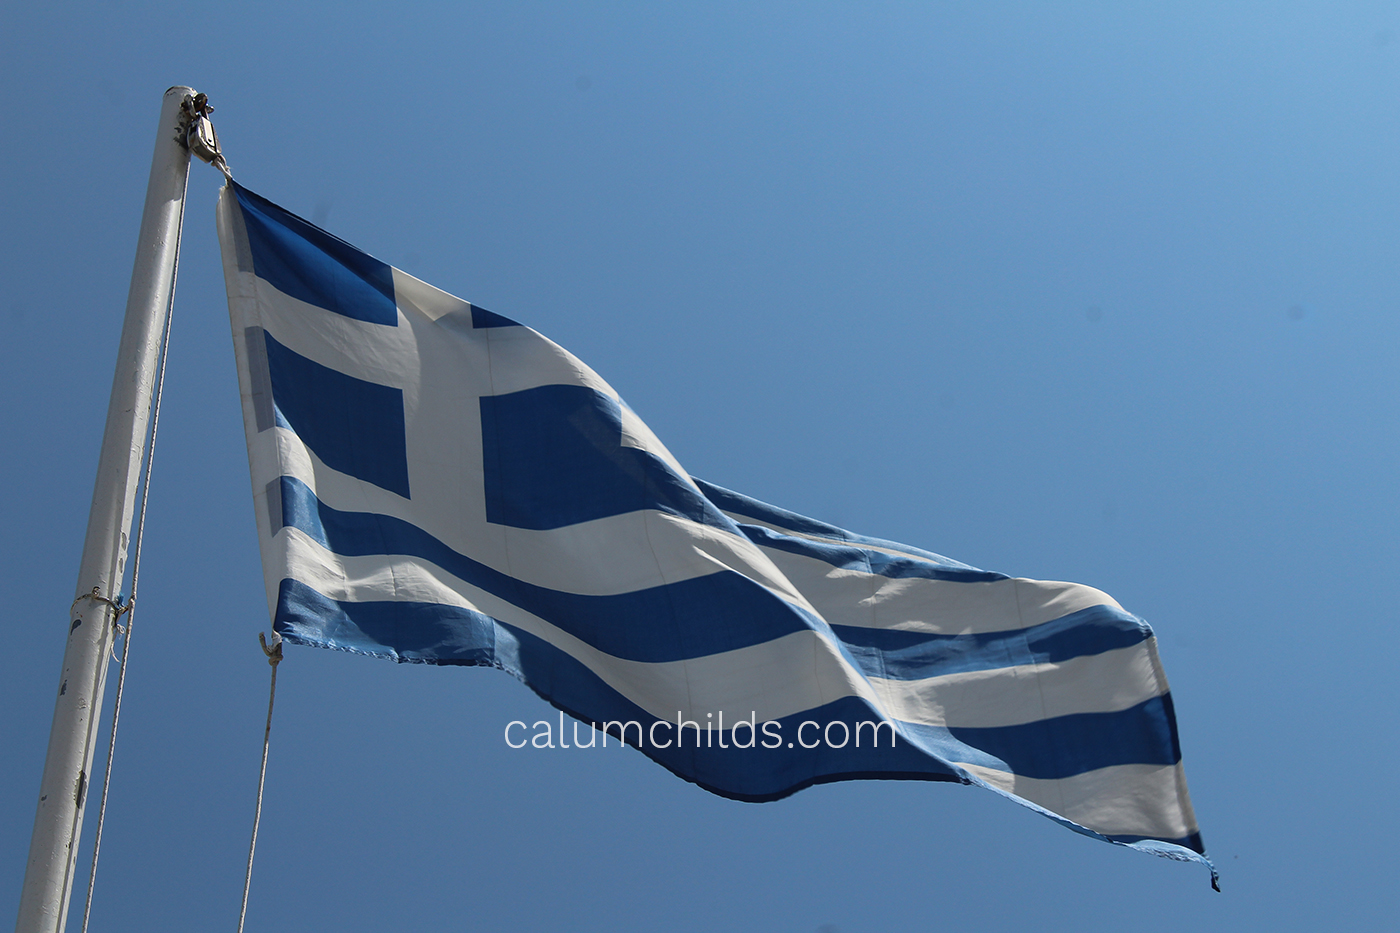 A large Greek flag waves on a grey pole with a blue sky behind it.